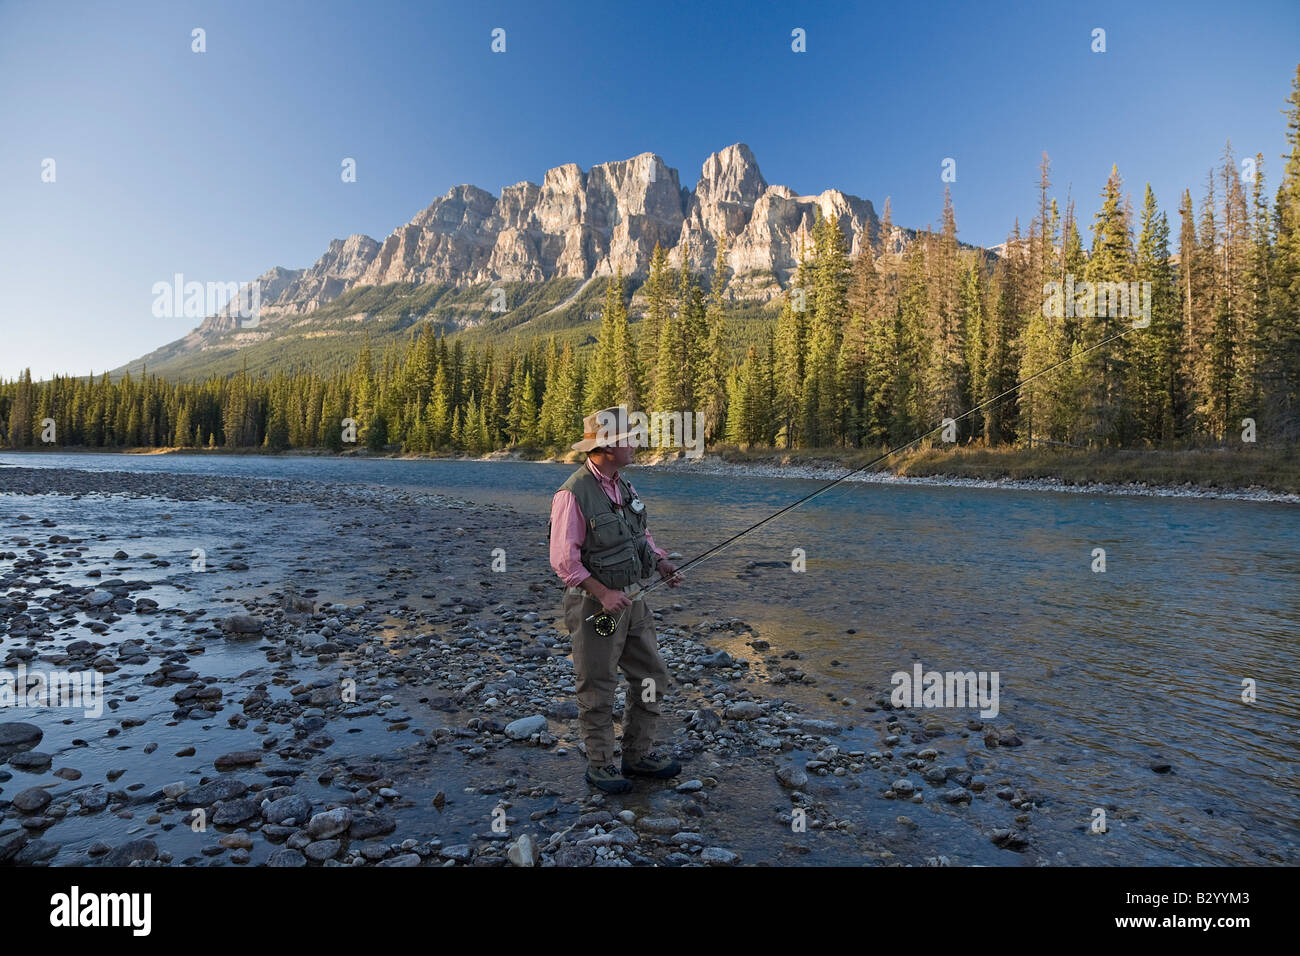 Man Fishing in Mountain River, Banff National Park, Alberta, Canada Stock Photo